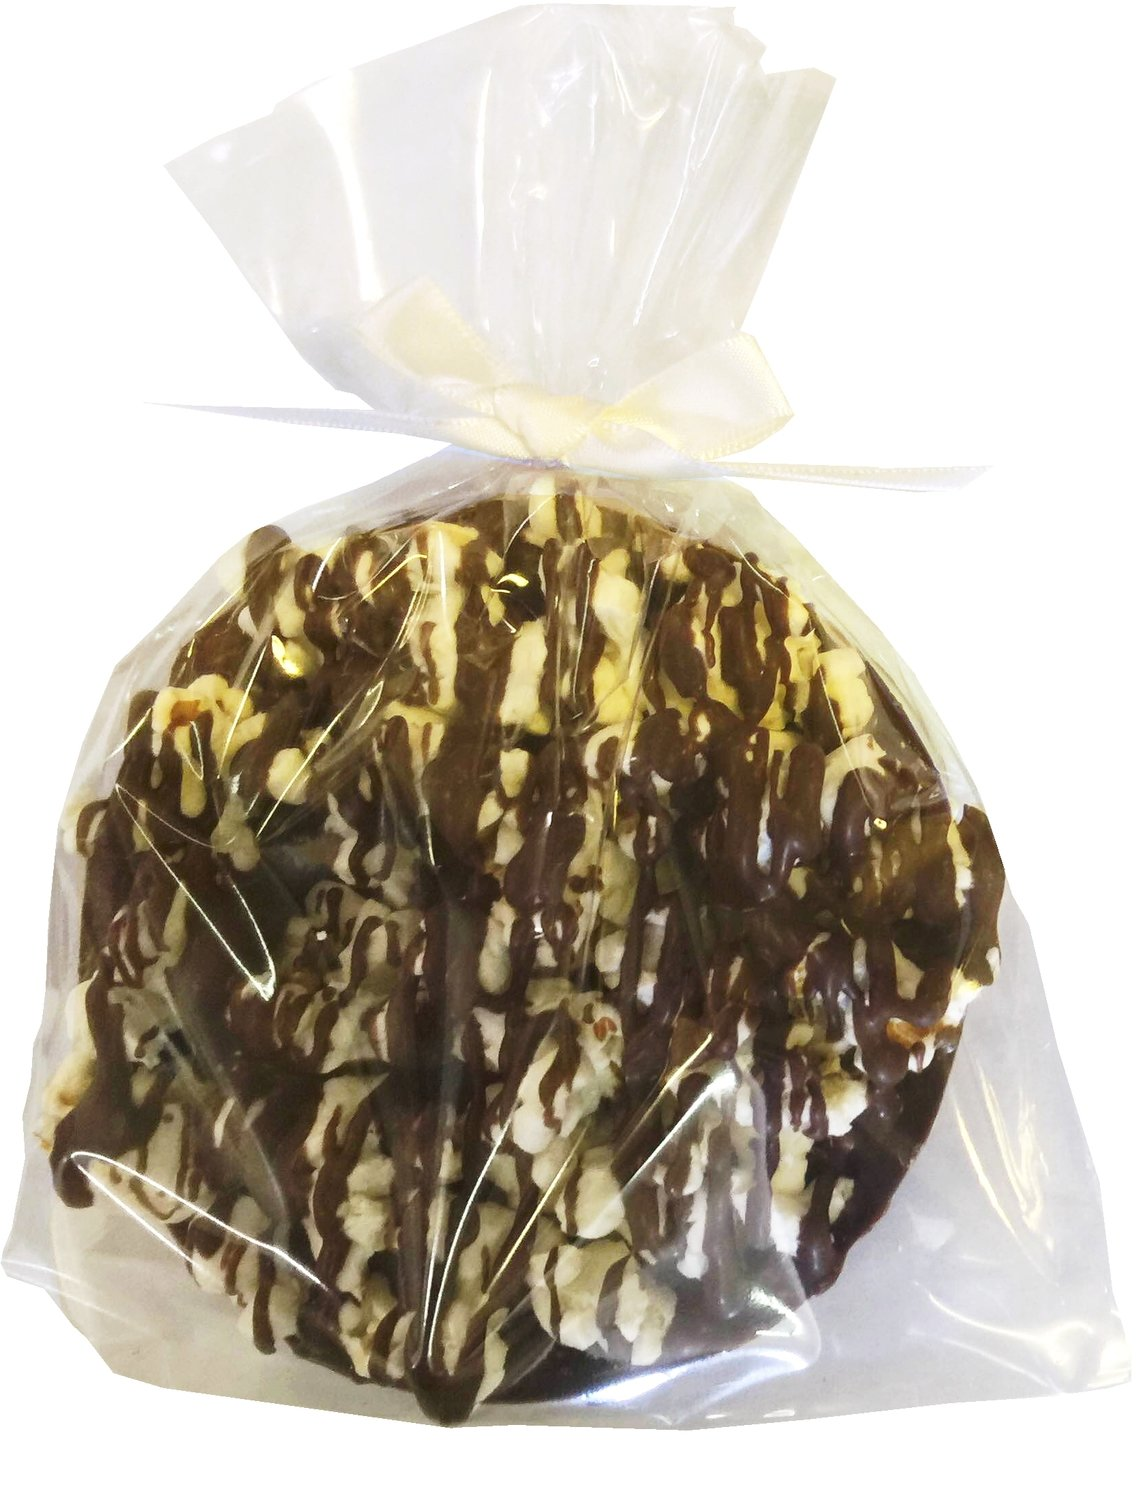 Chocolate Pizza Pattie™ with Chocolate Drizzle